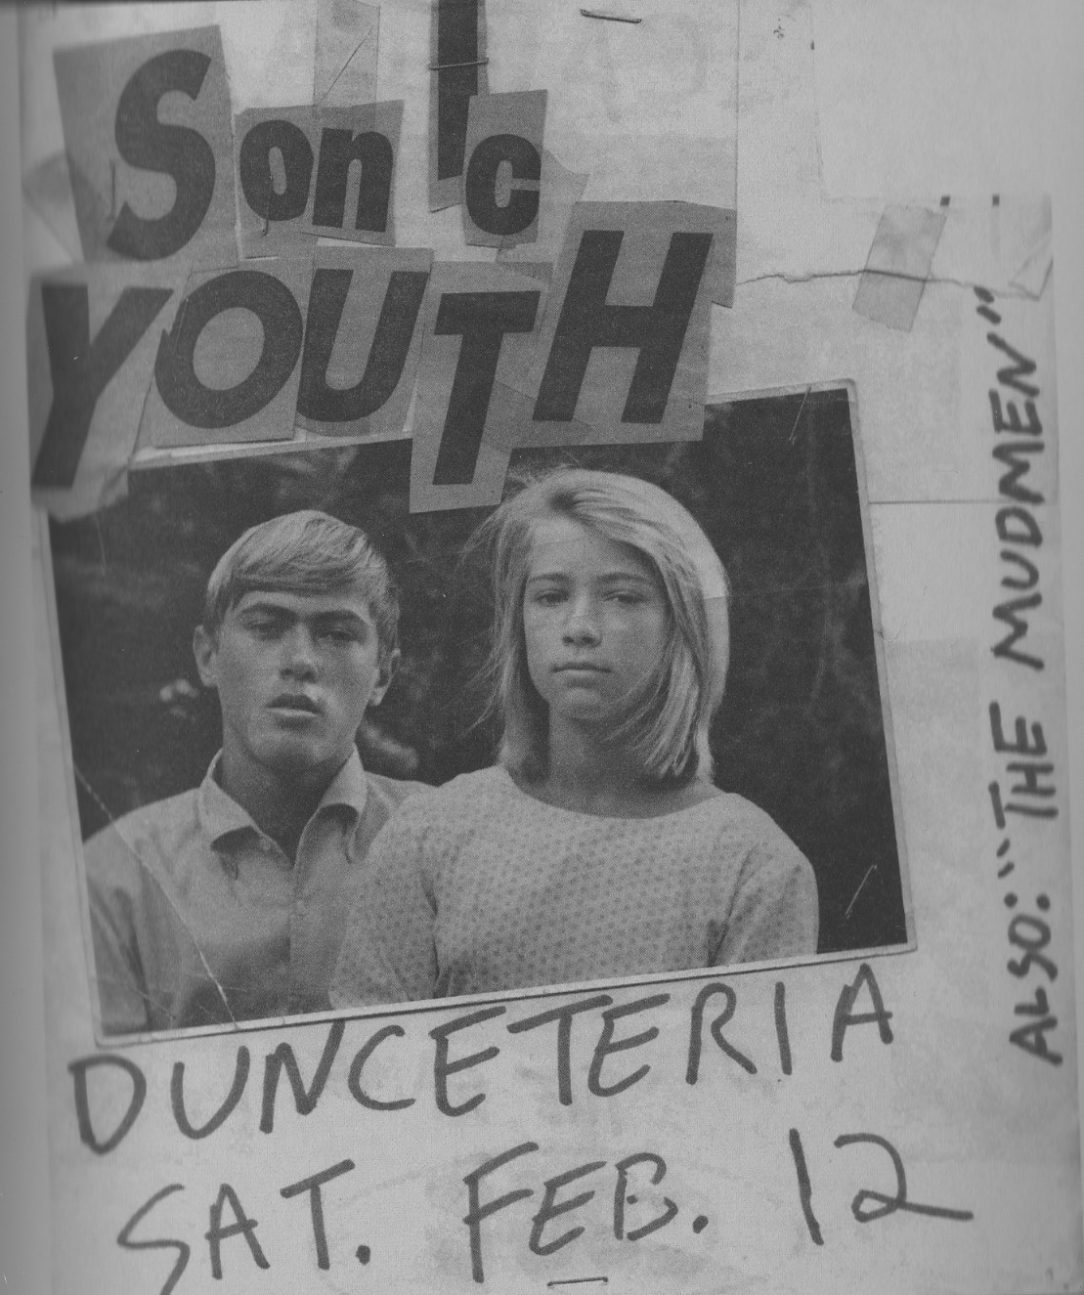 09.Sonic Youth